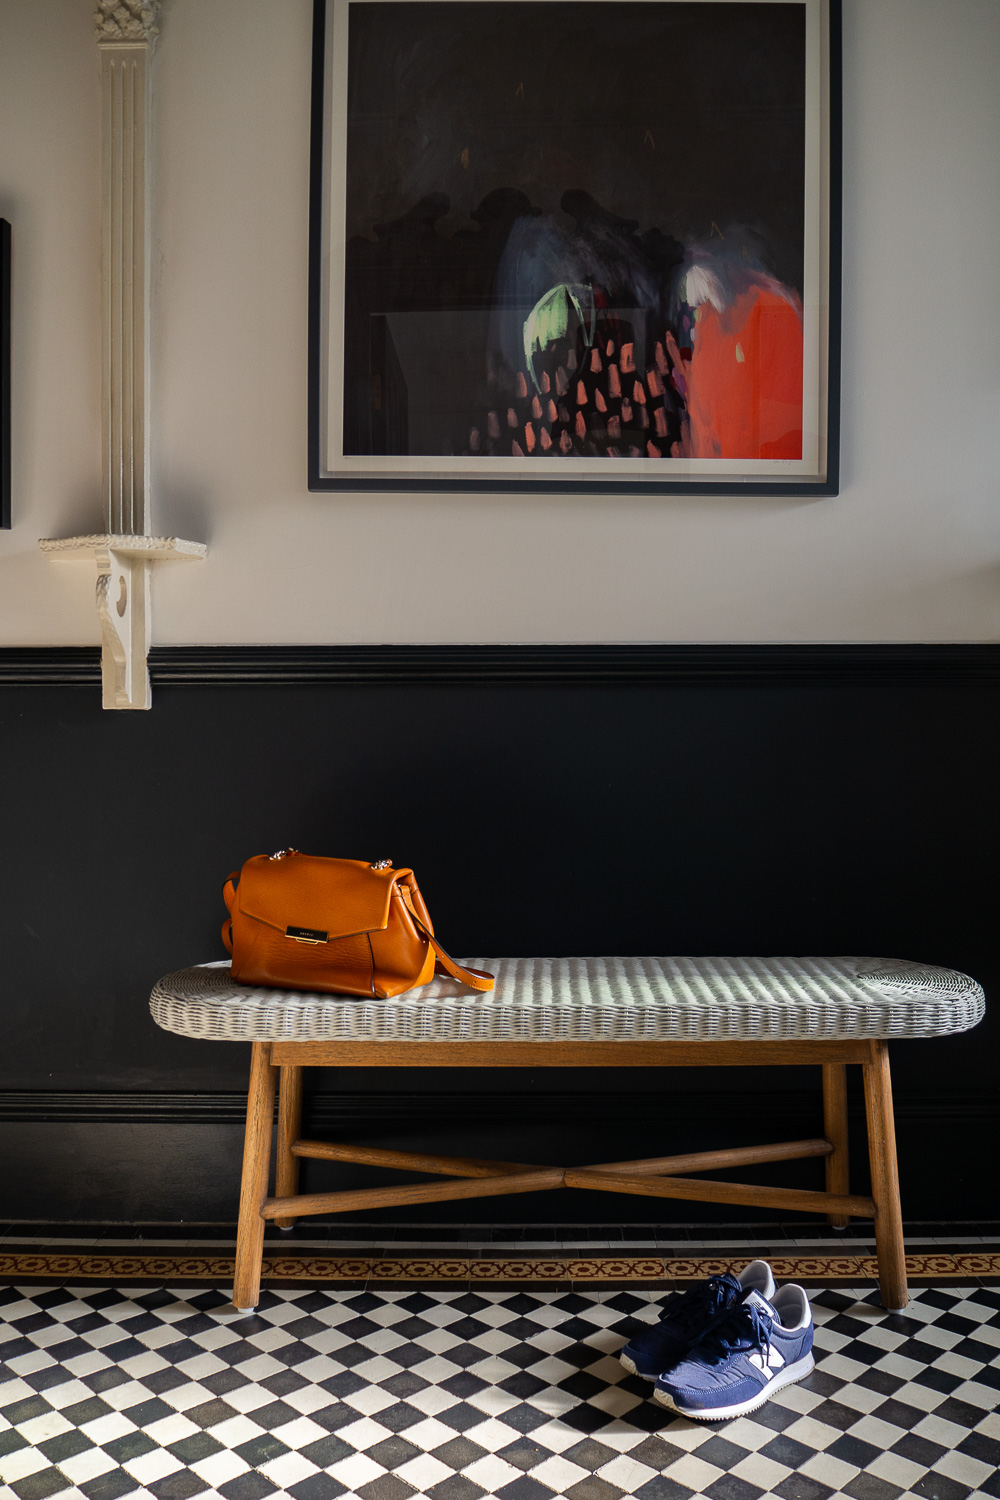 House of Frasier bench in The Frugality's hallway. Styled with a pair of New Balance trainers and Sandro leather bag.